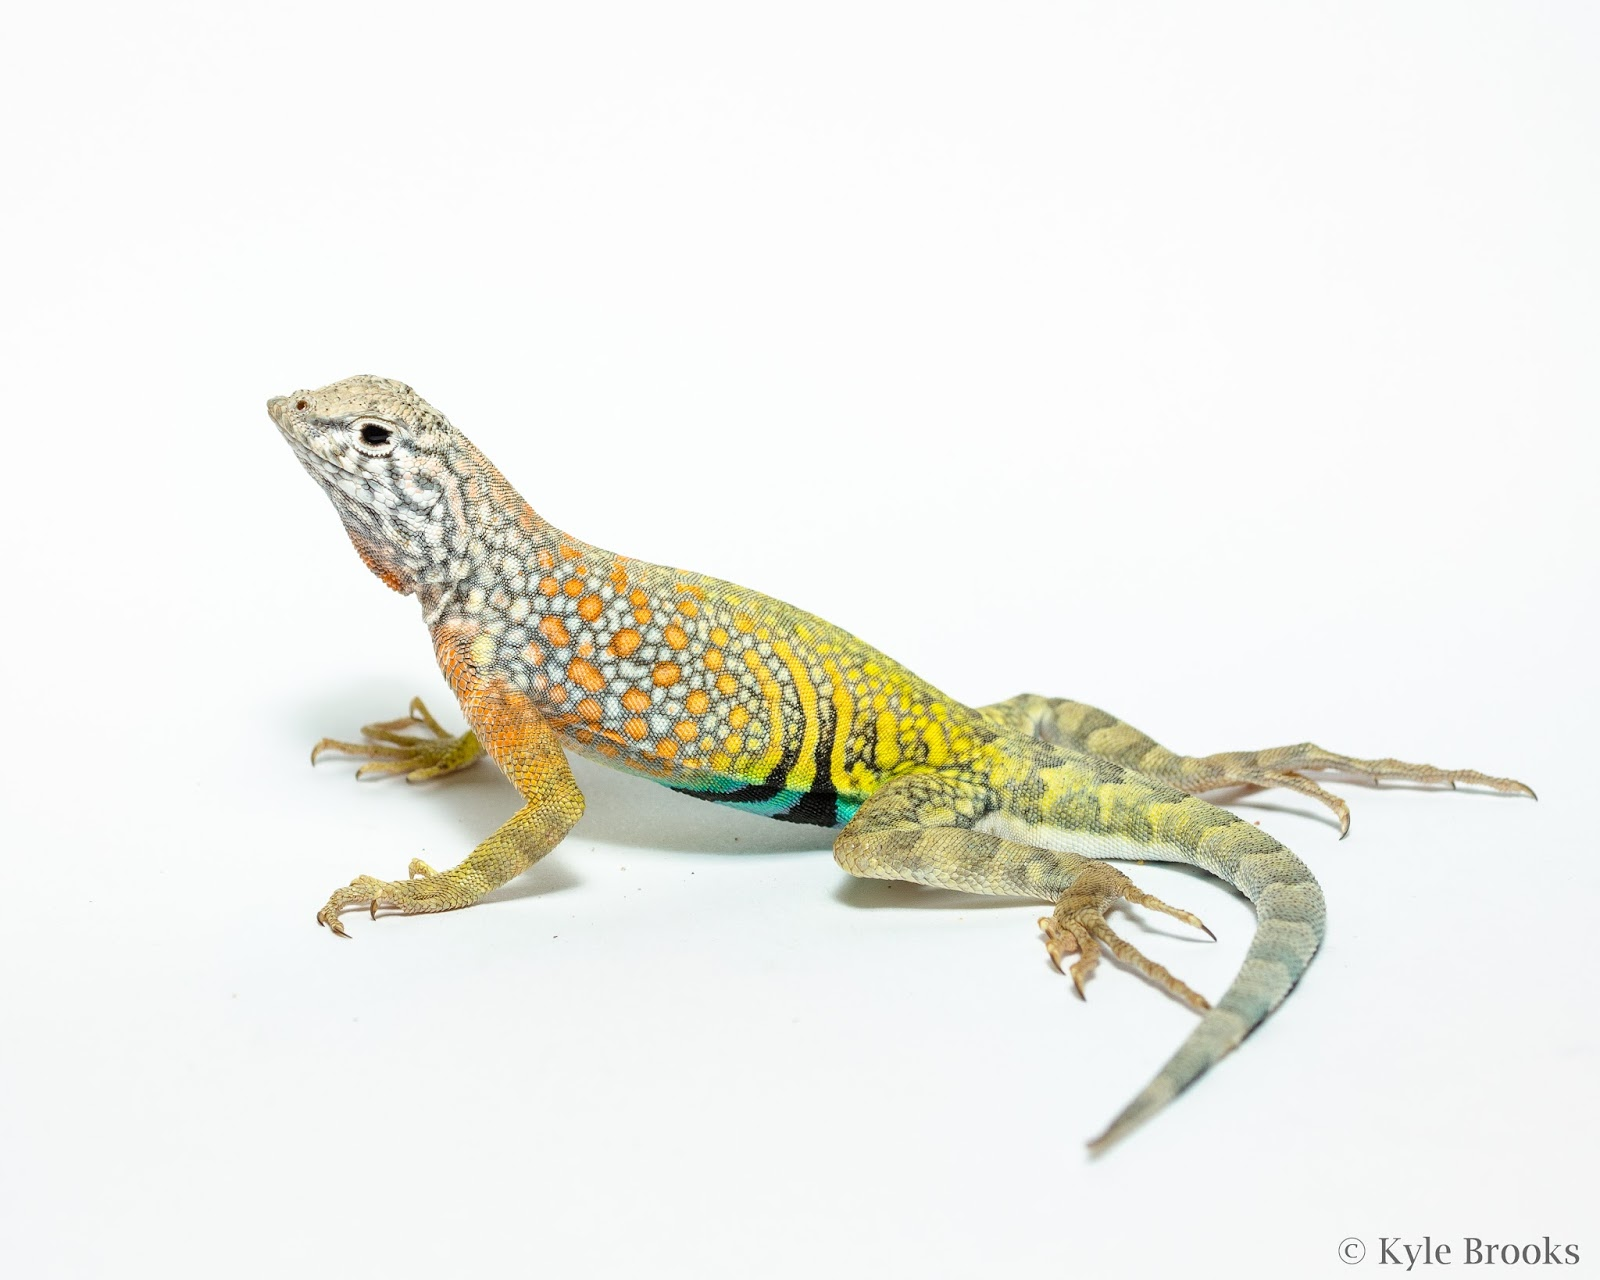 Greater Earless Lizard Cophosaurus texanus